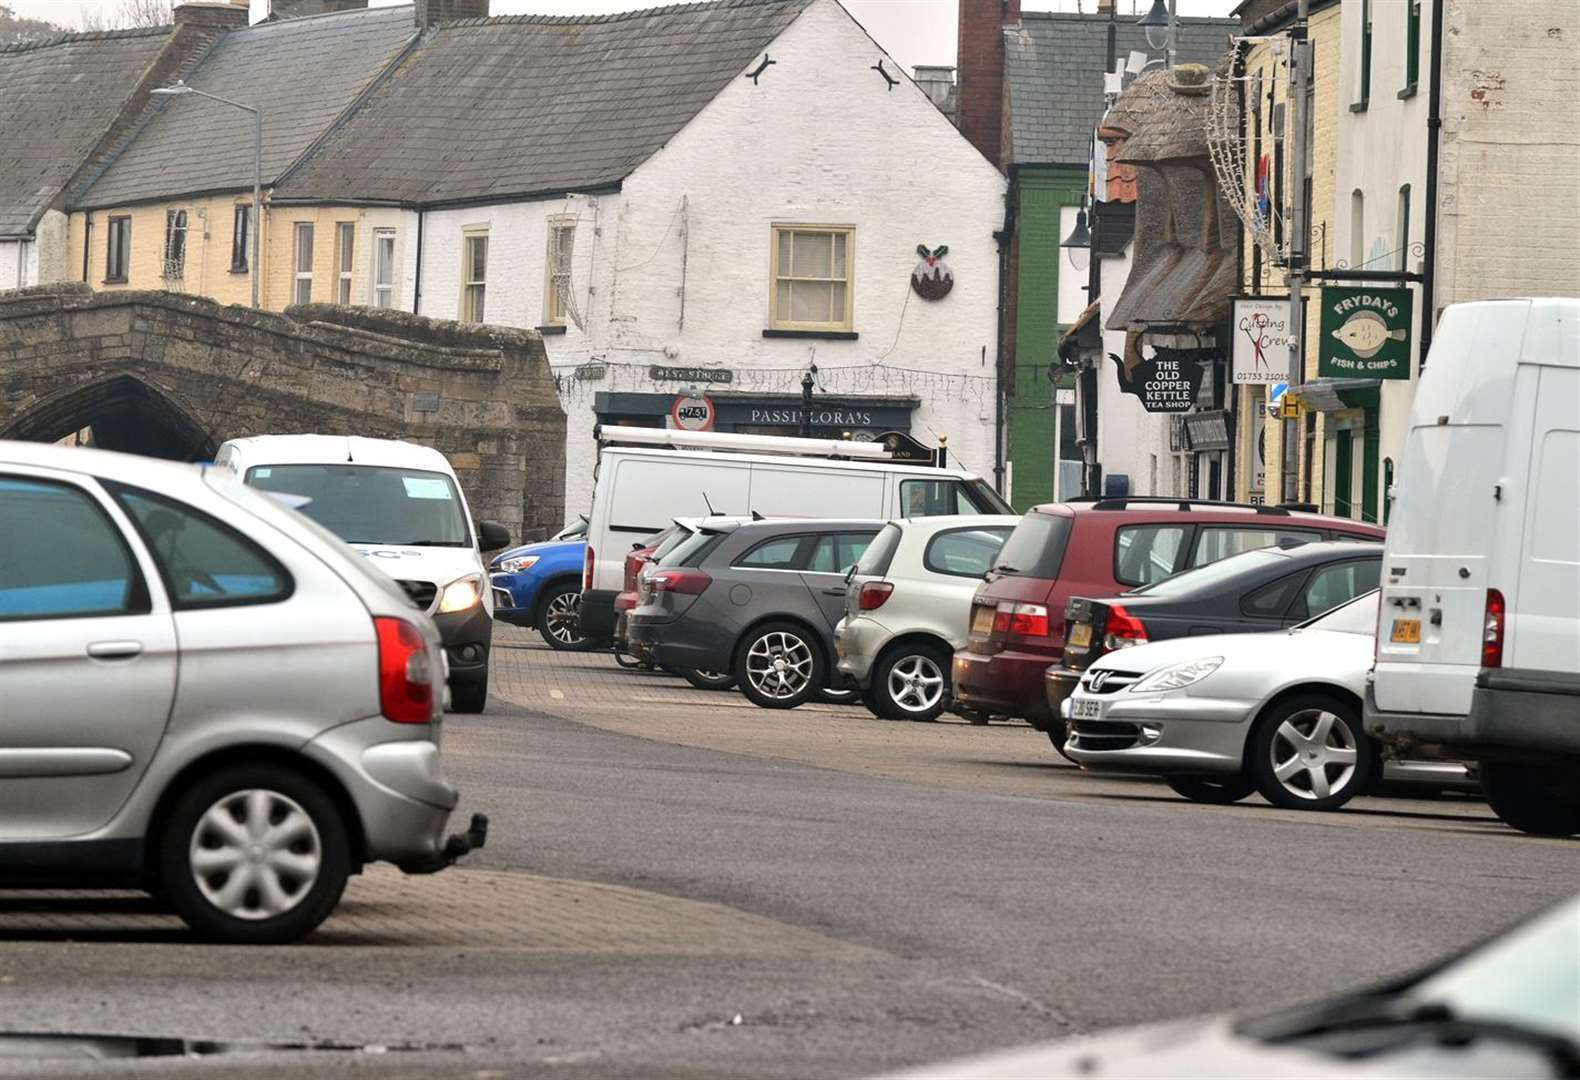 Call for 'radical ideas' to ease Crowland's parking problems